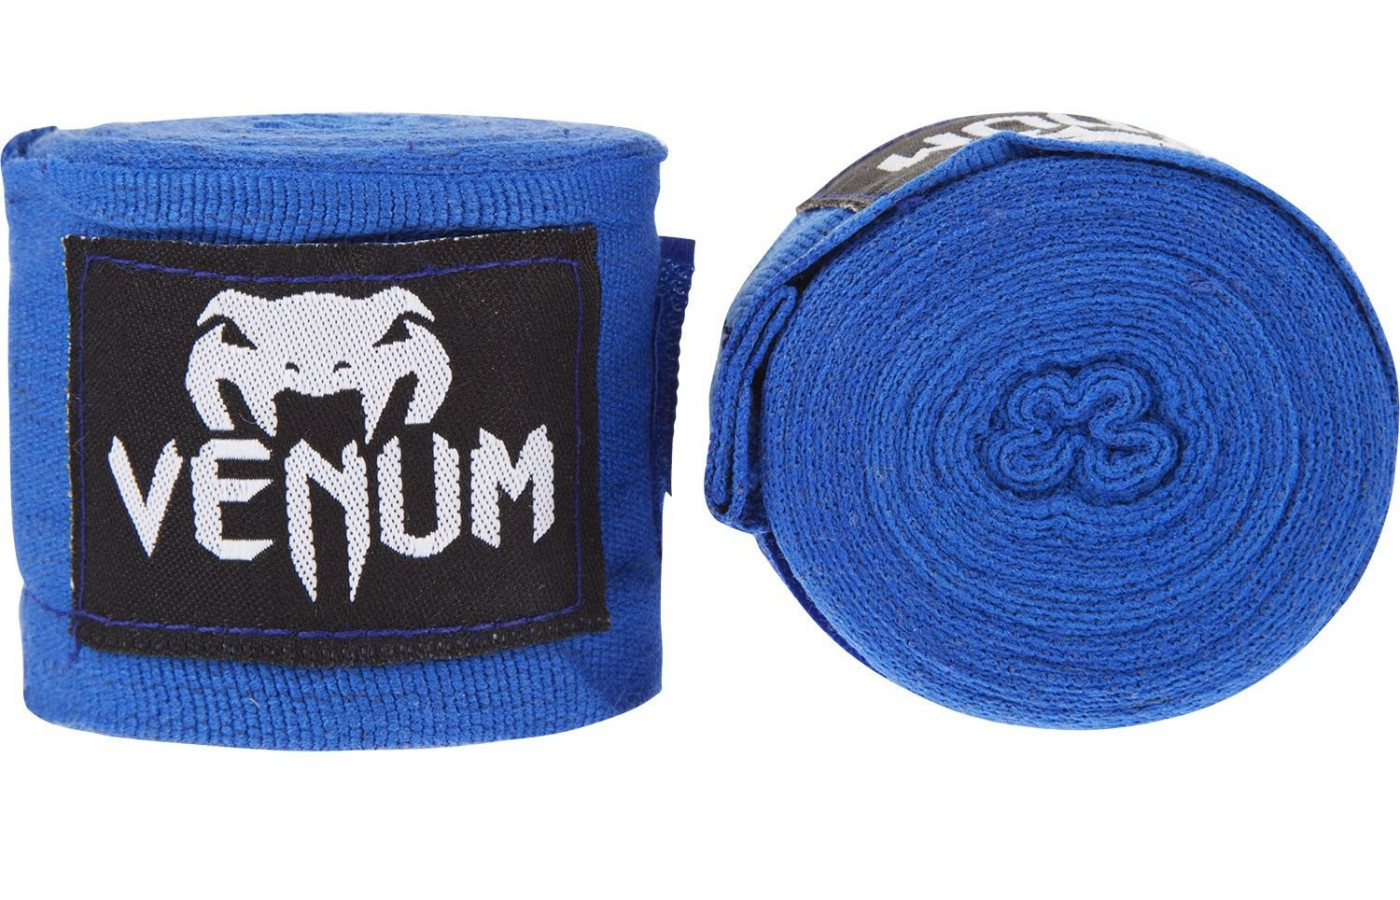 Venum Wraps blue